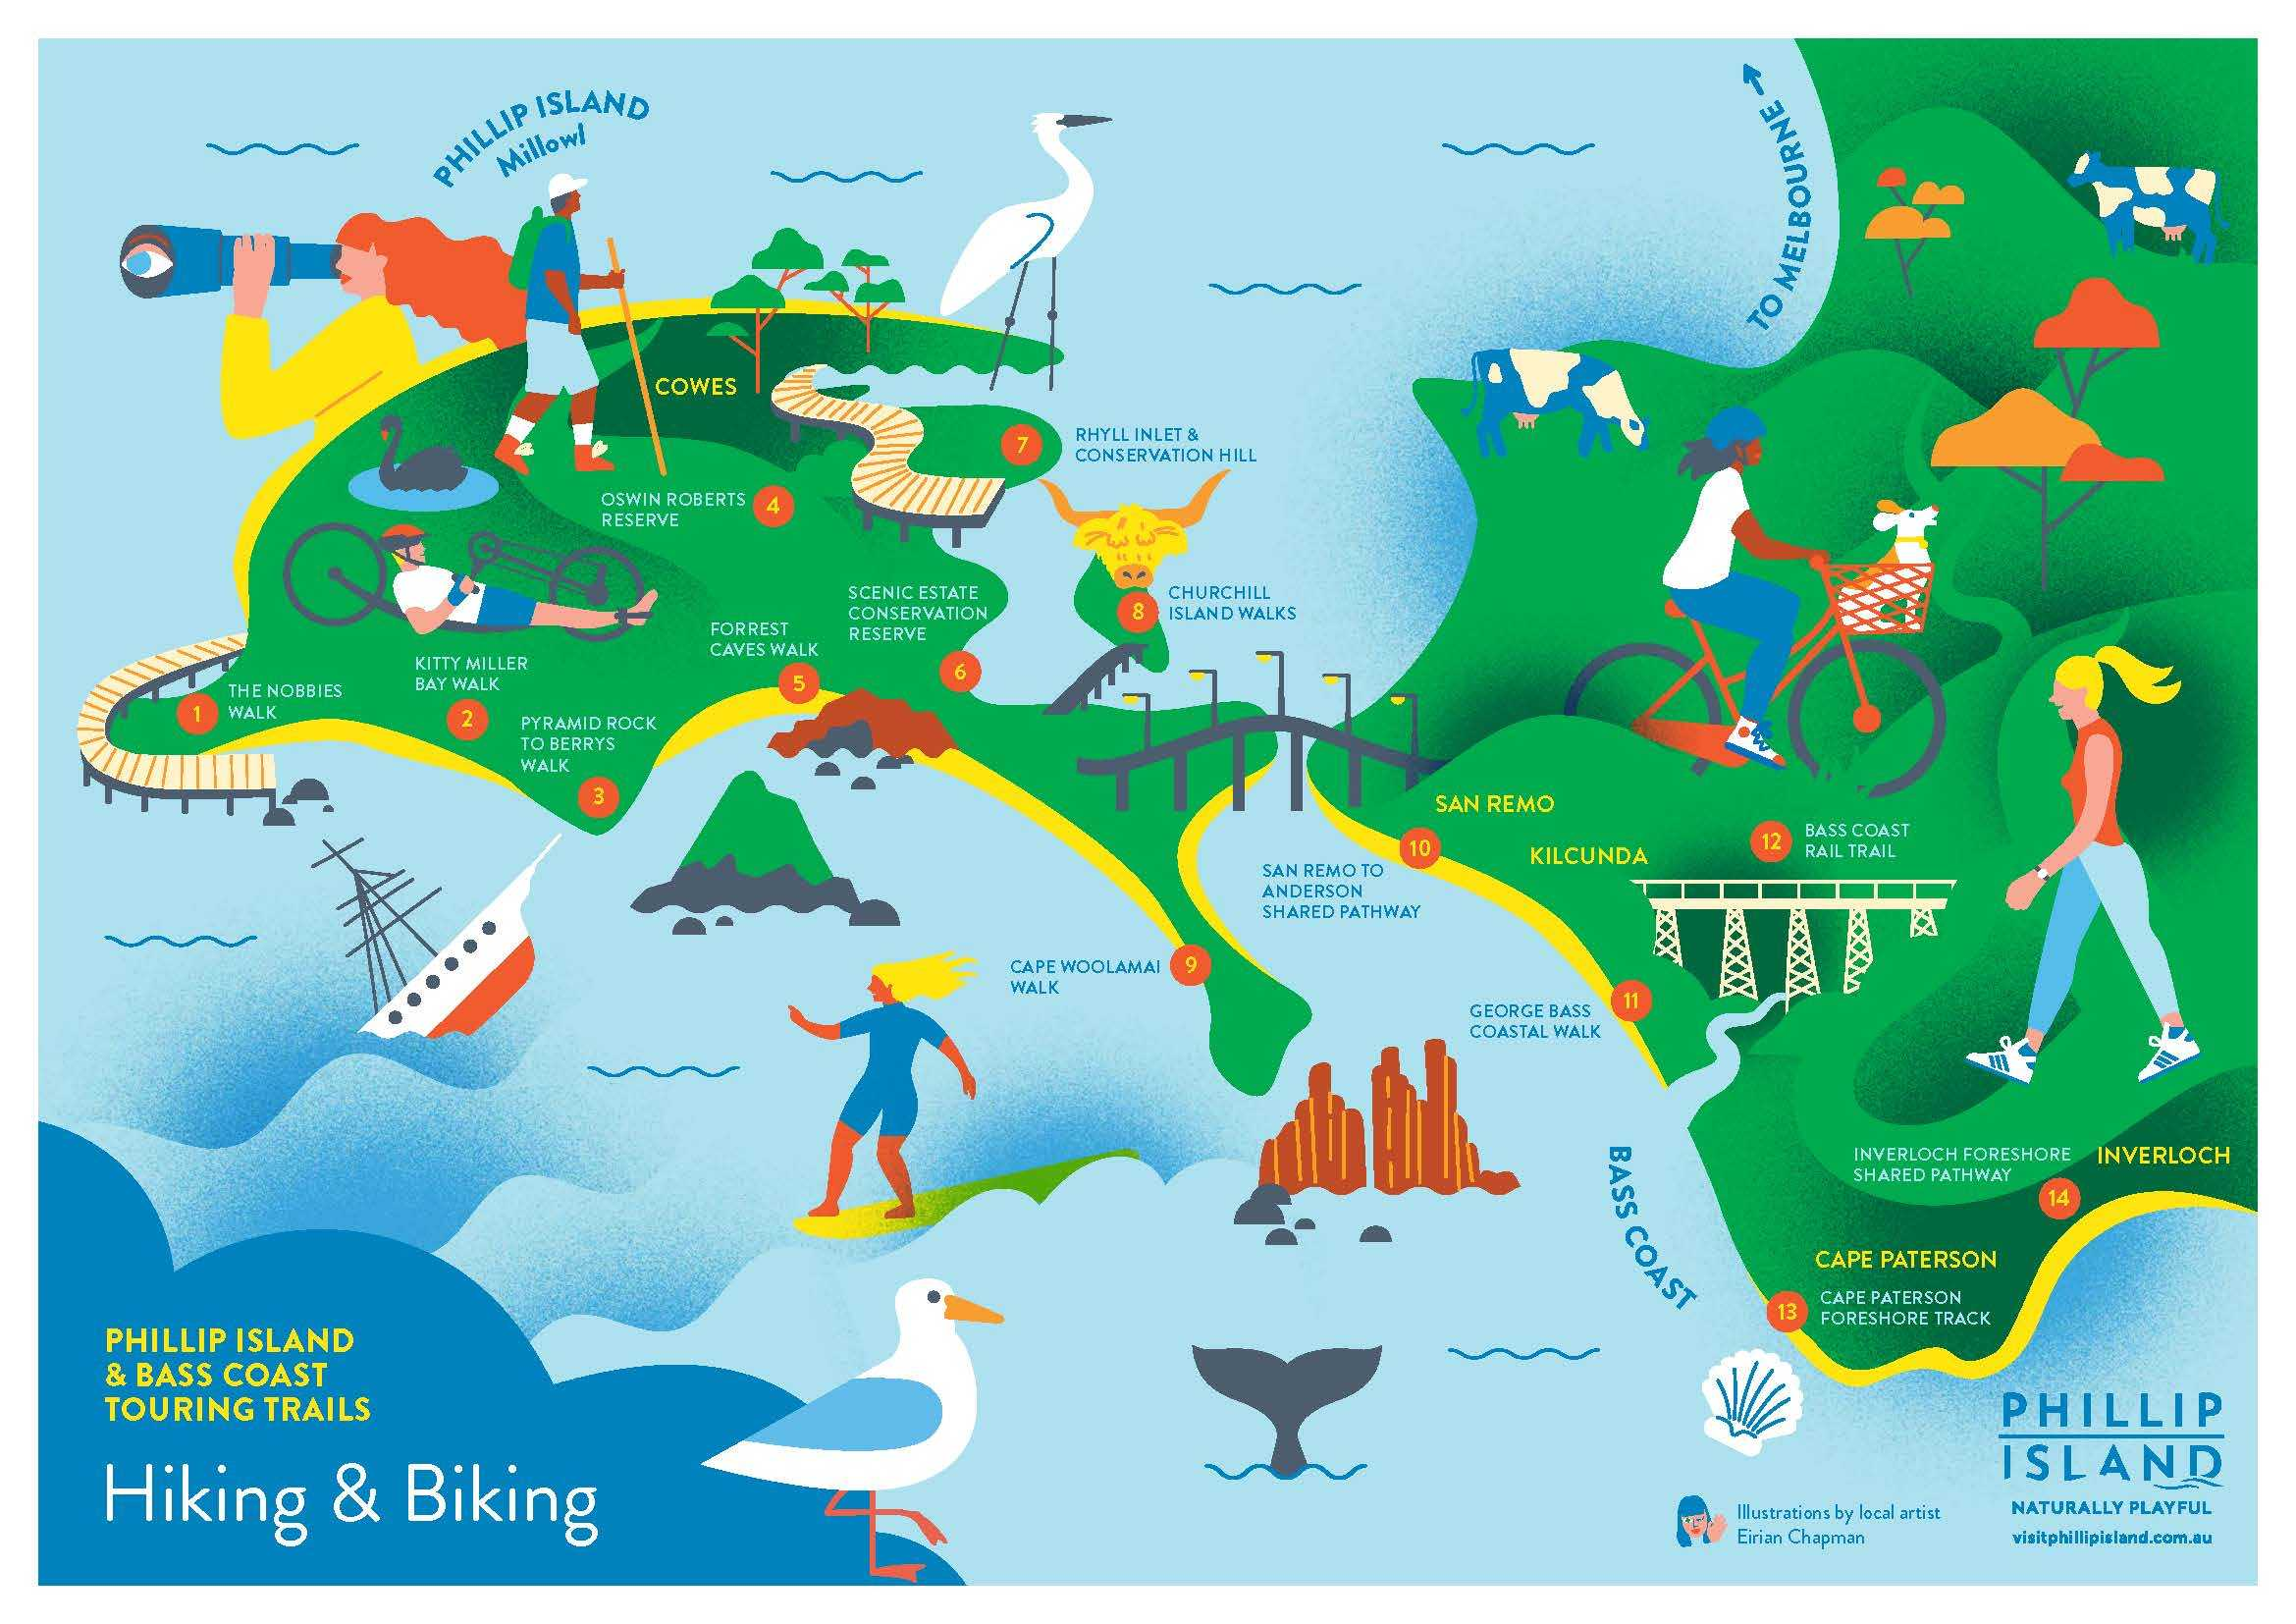 Phillip Island Hiking and Biking Trail